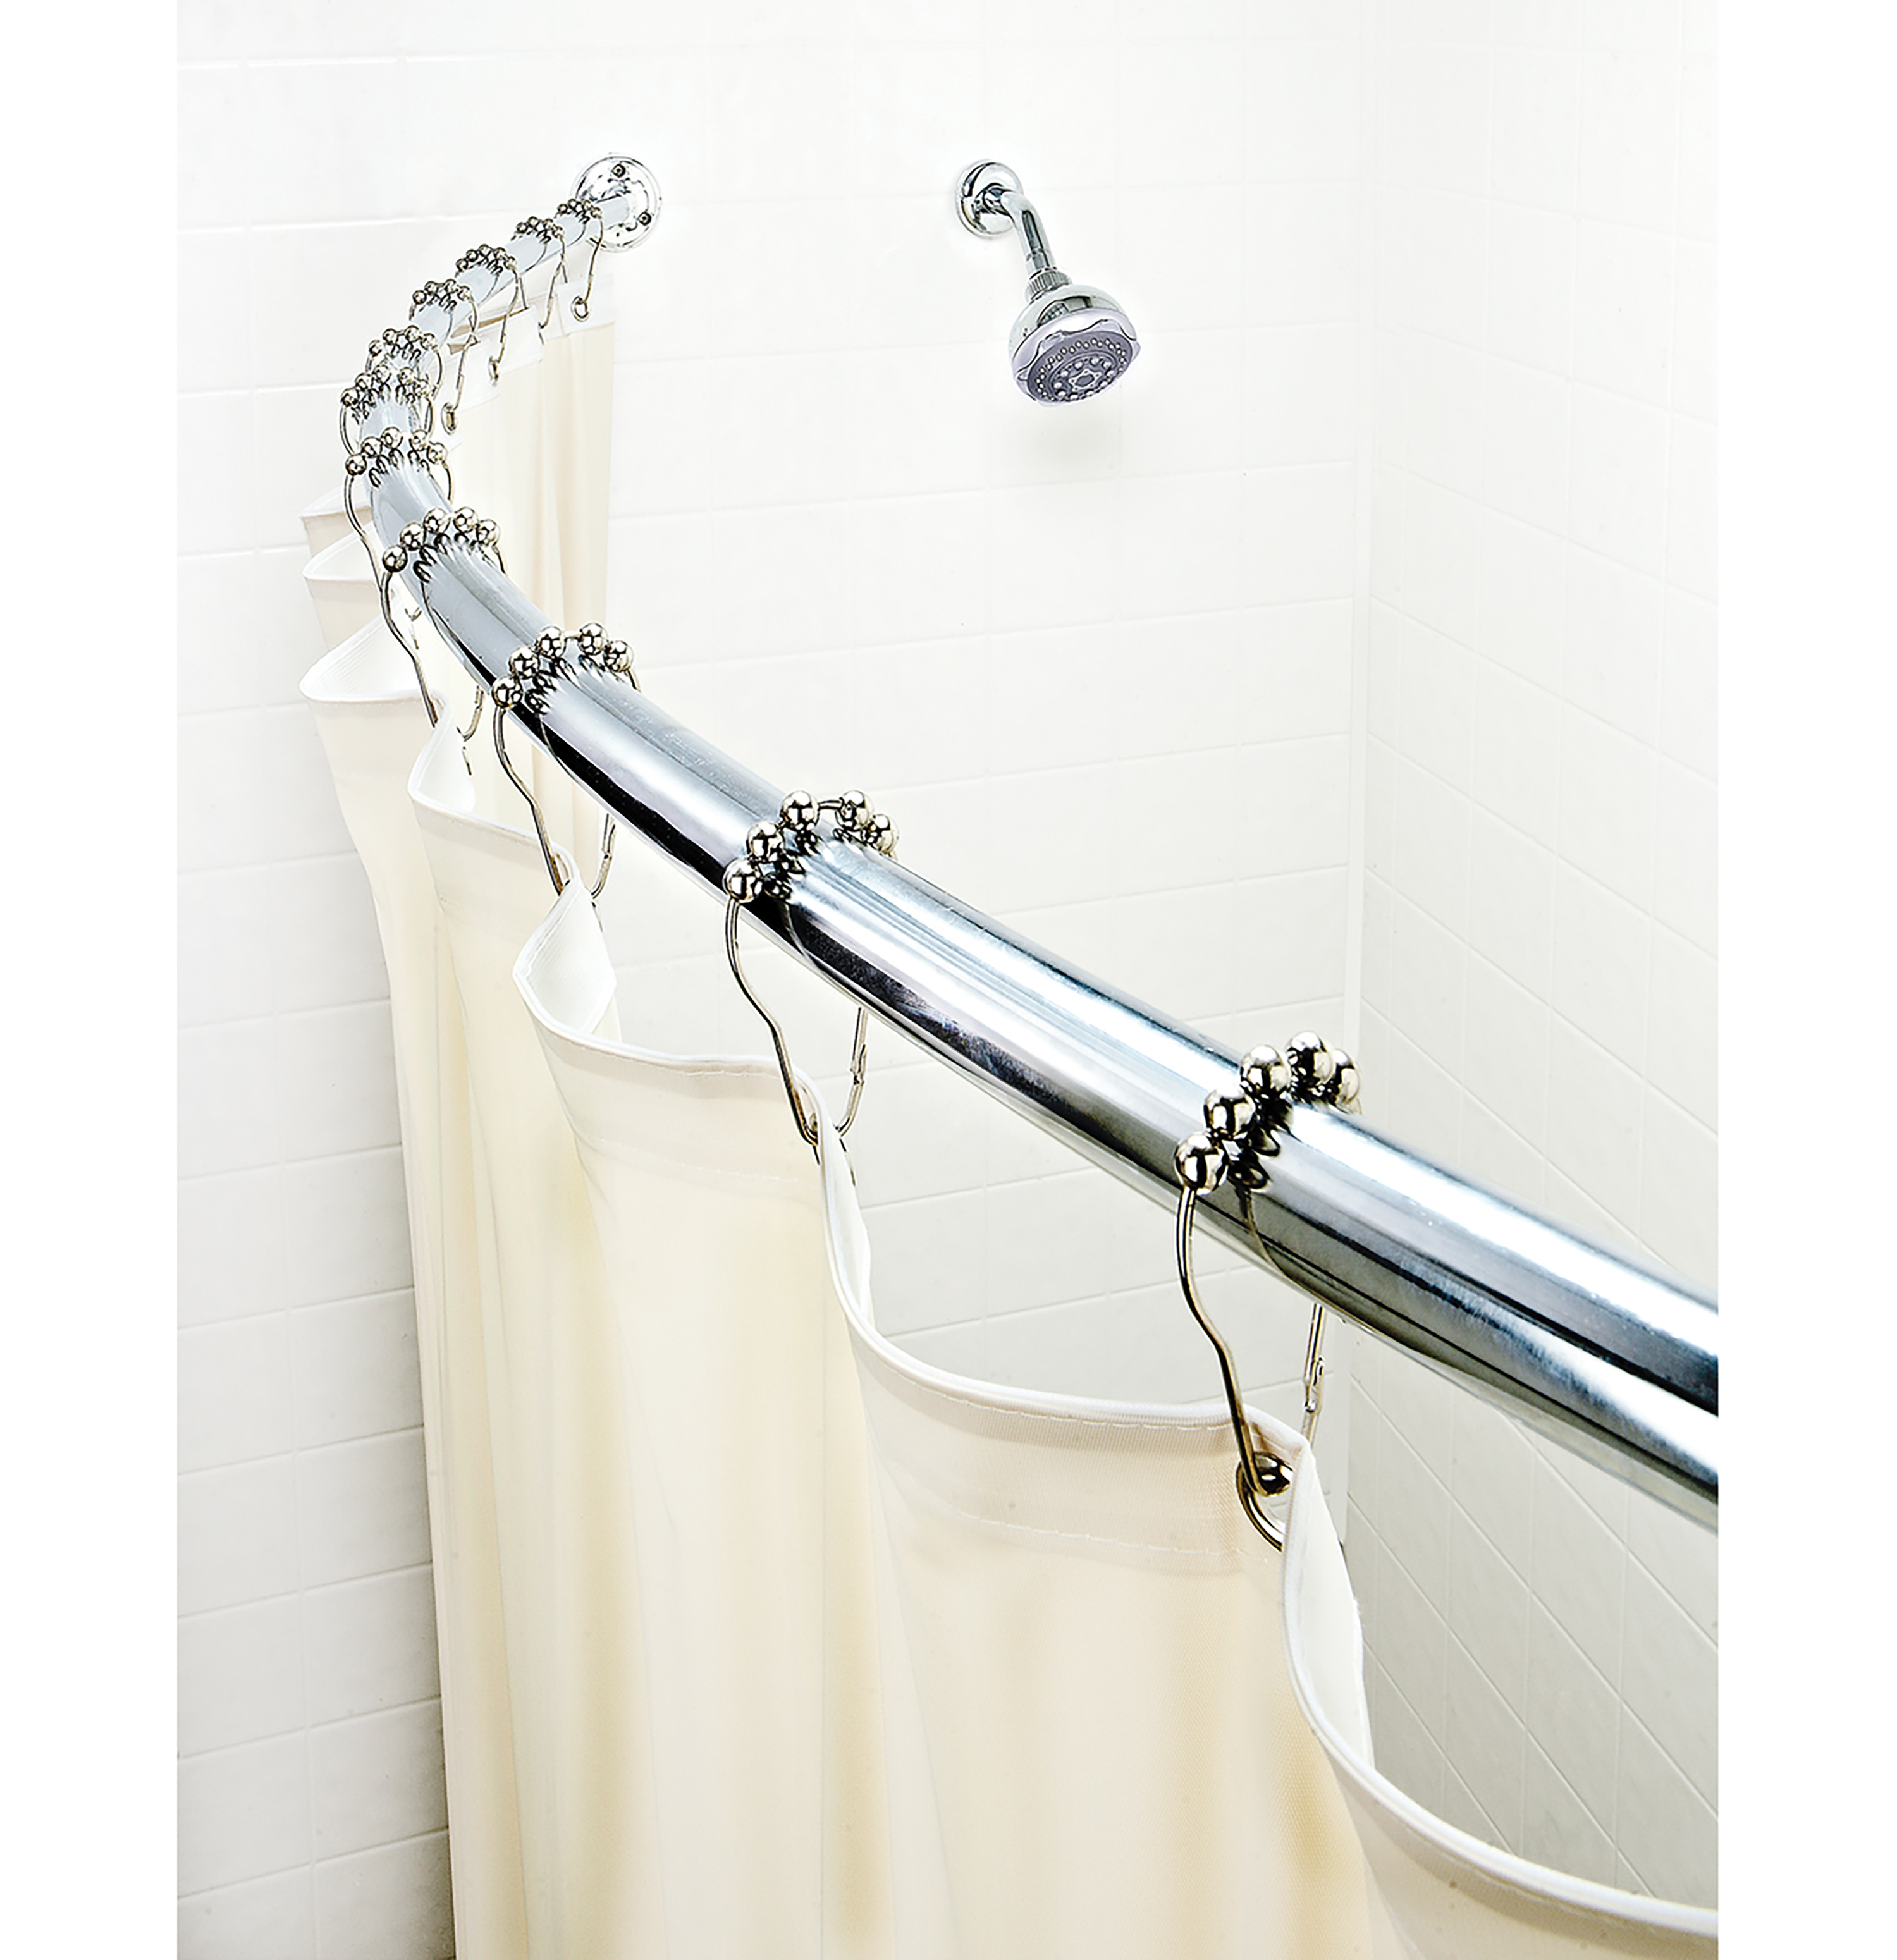 Curved Chrome Shower Rod